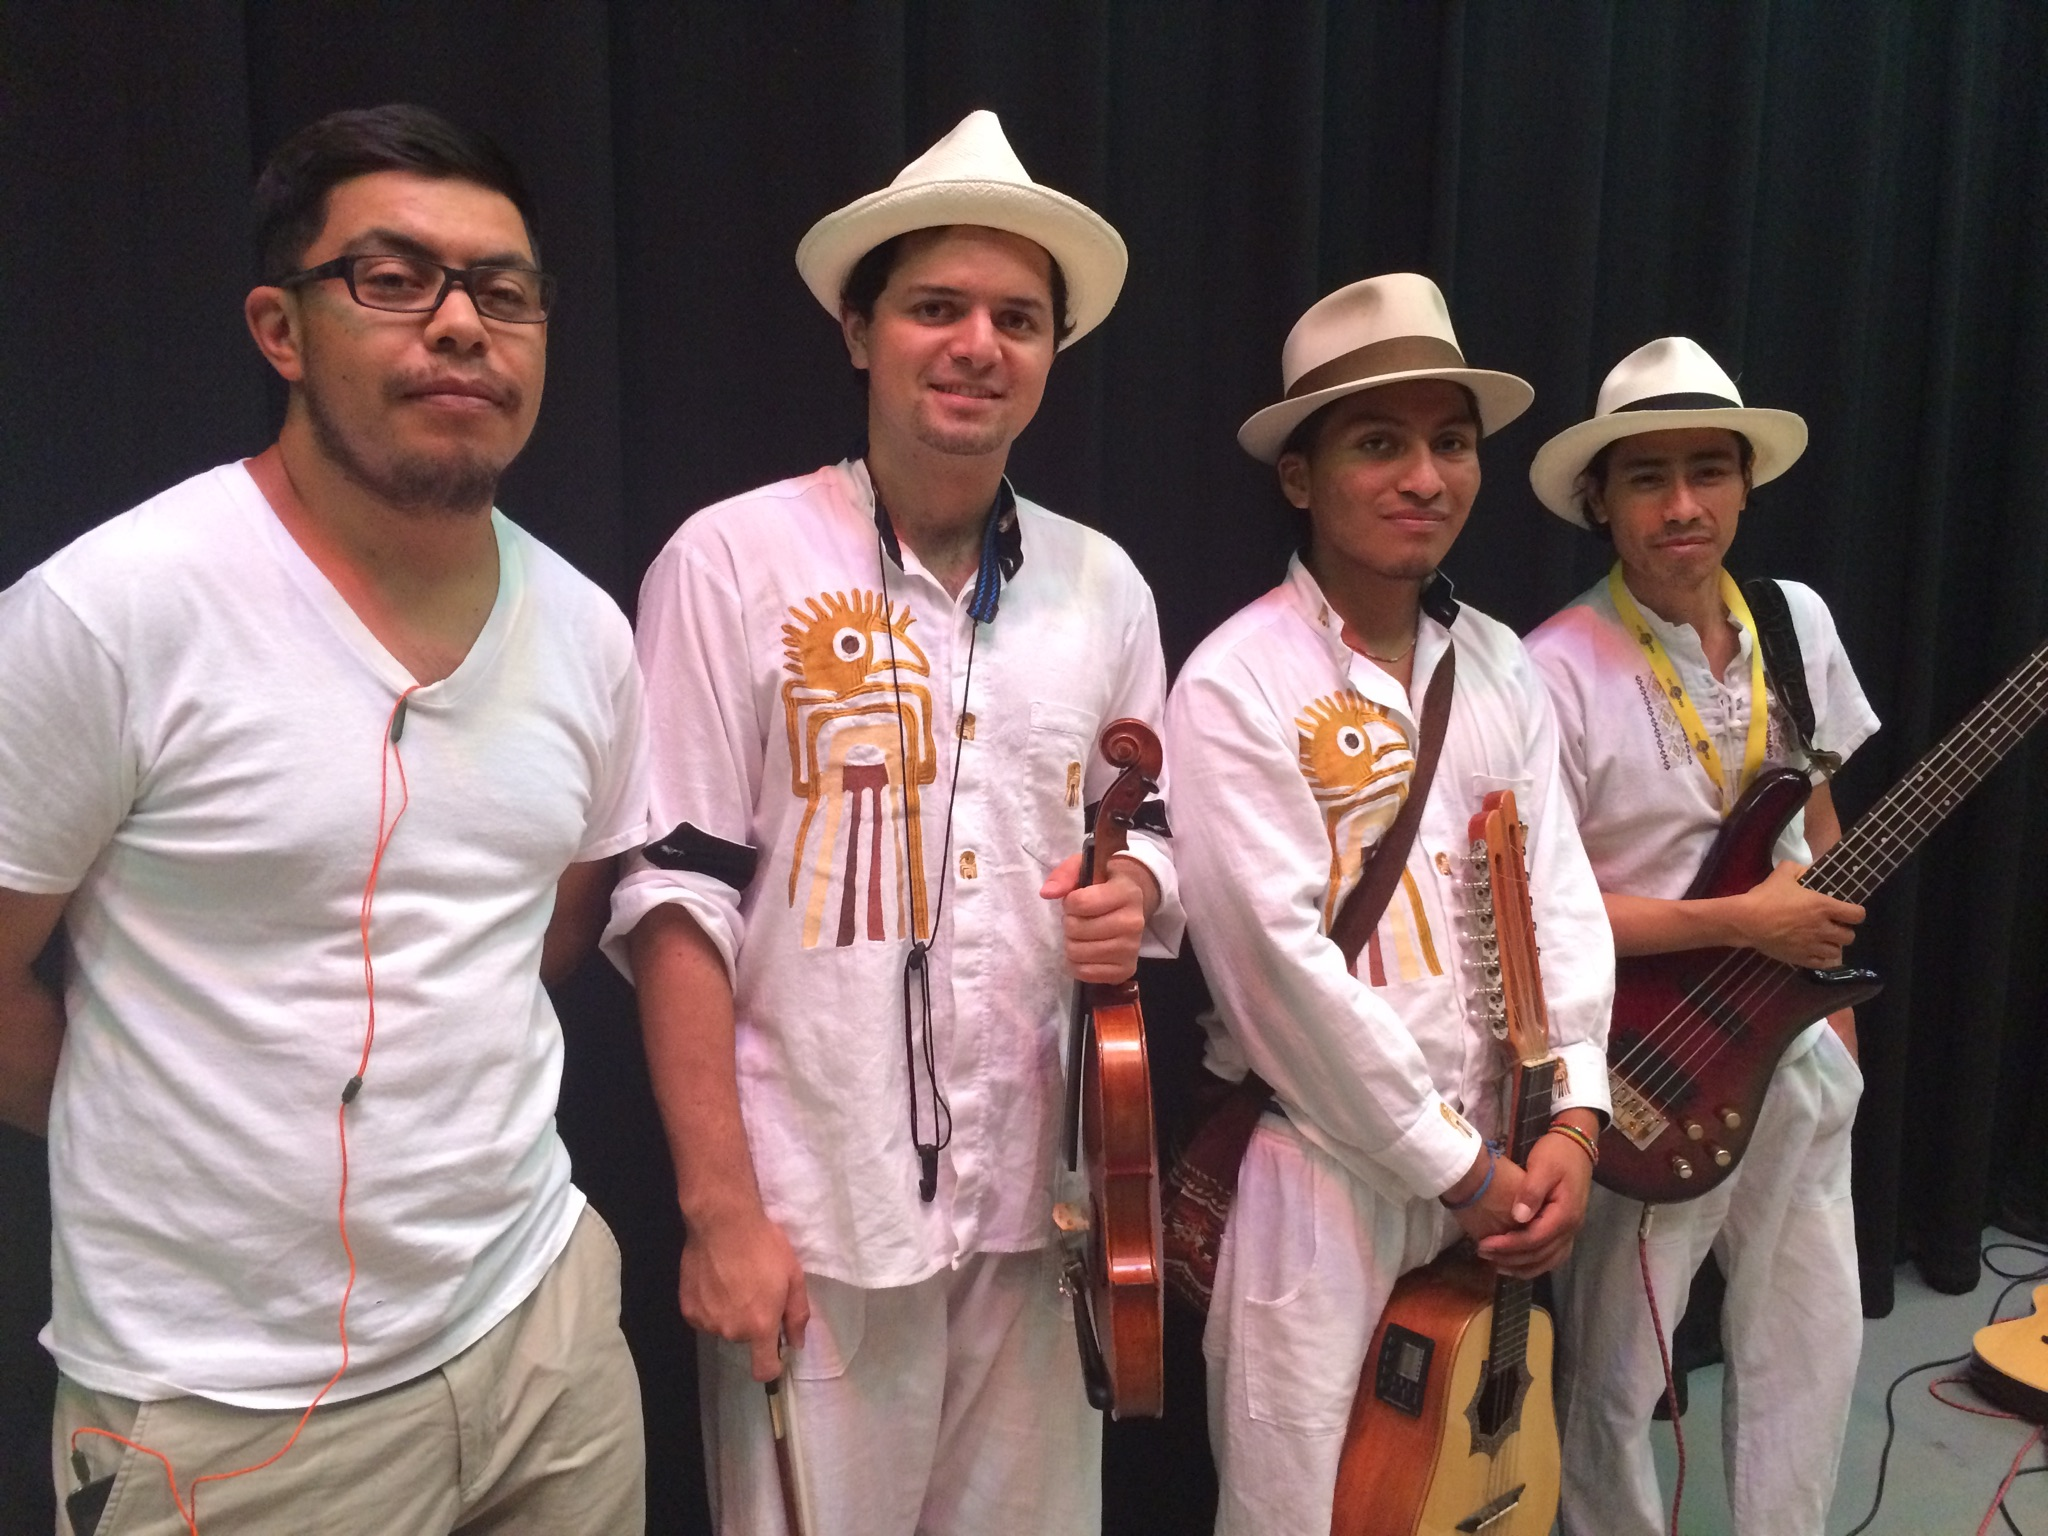 Folkmoot musician became father of twins!